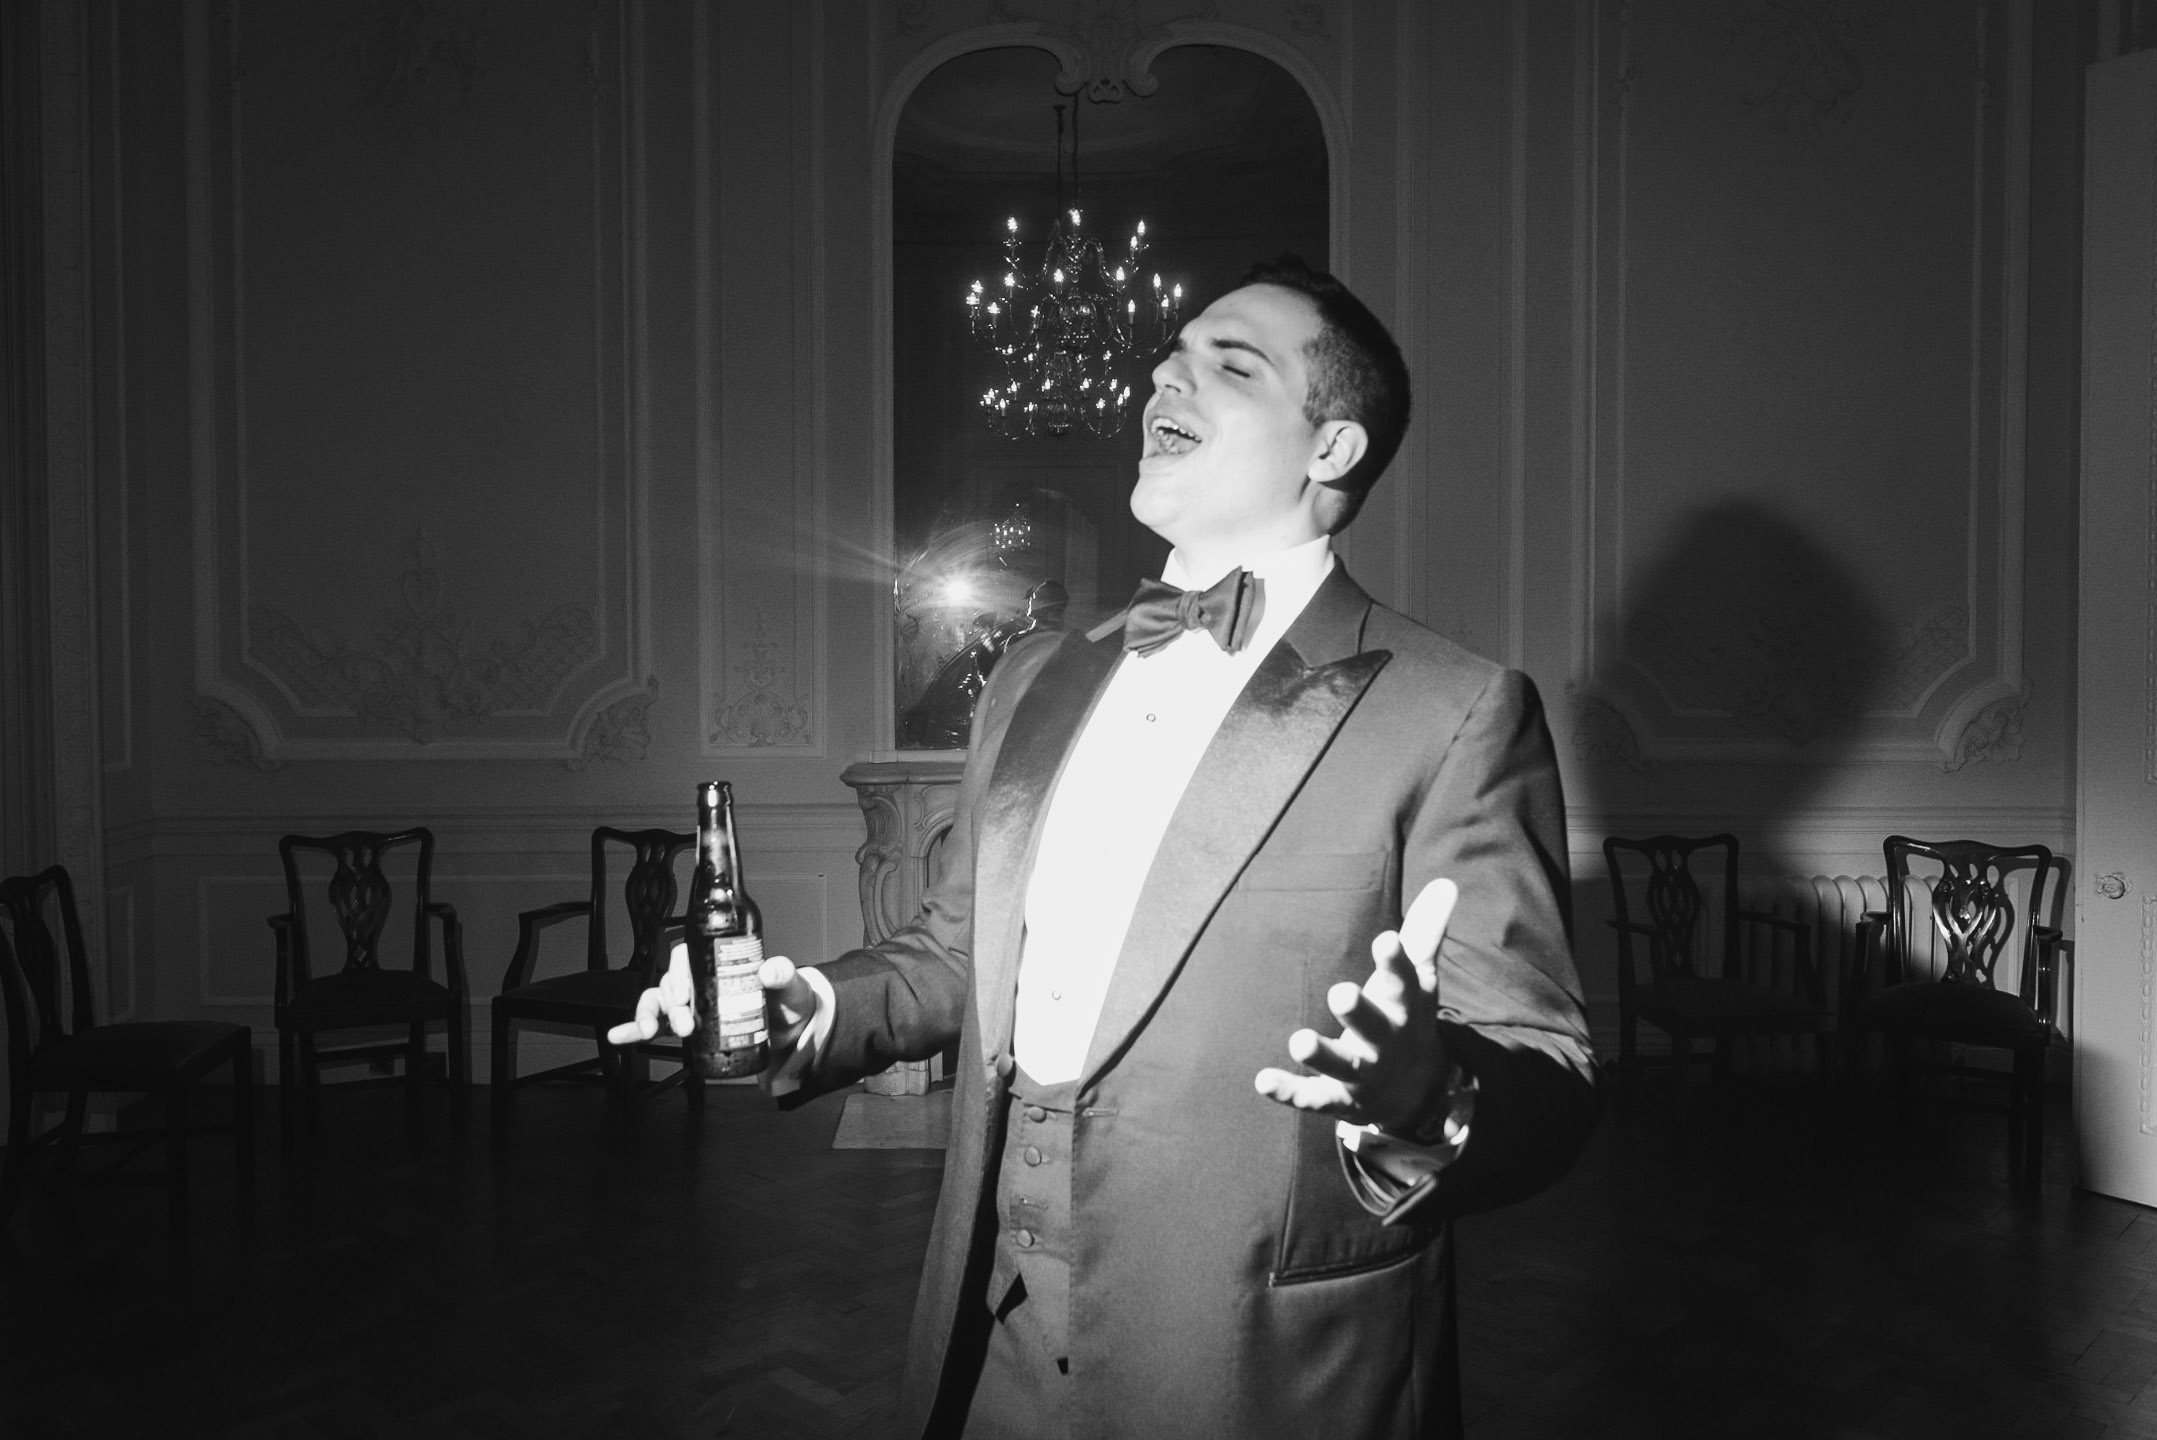 carine bea photography, groom having fun wedding Carlton House Terrace London